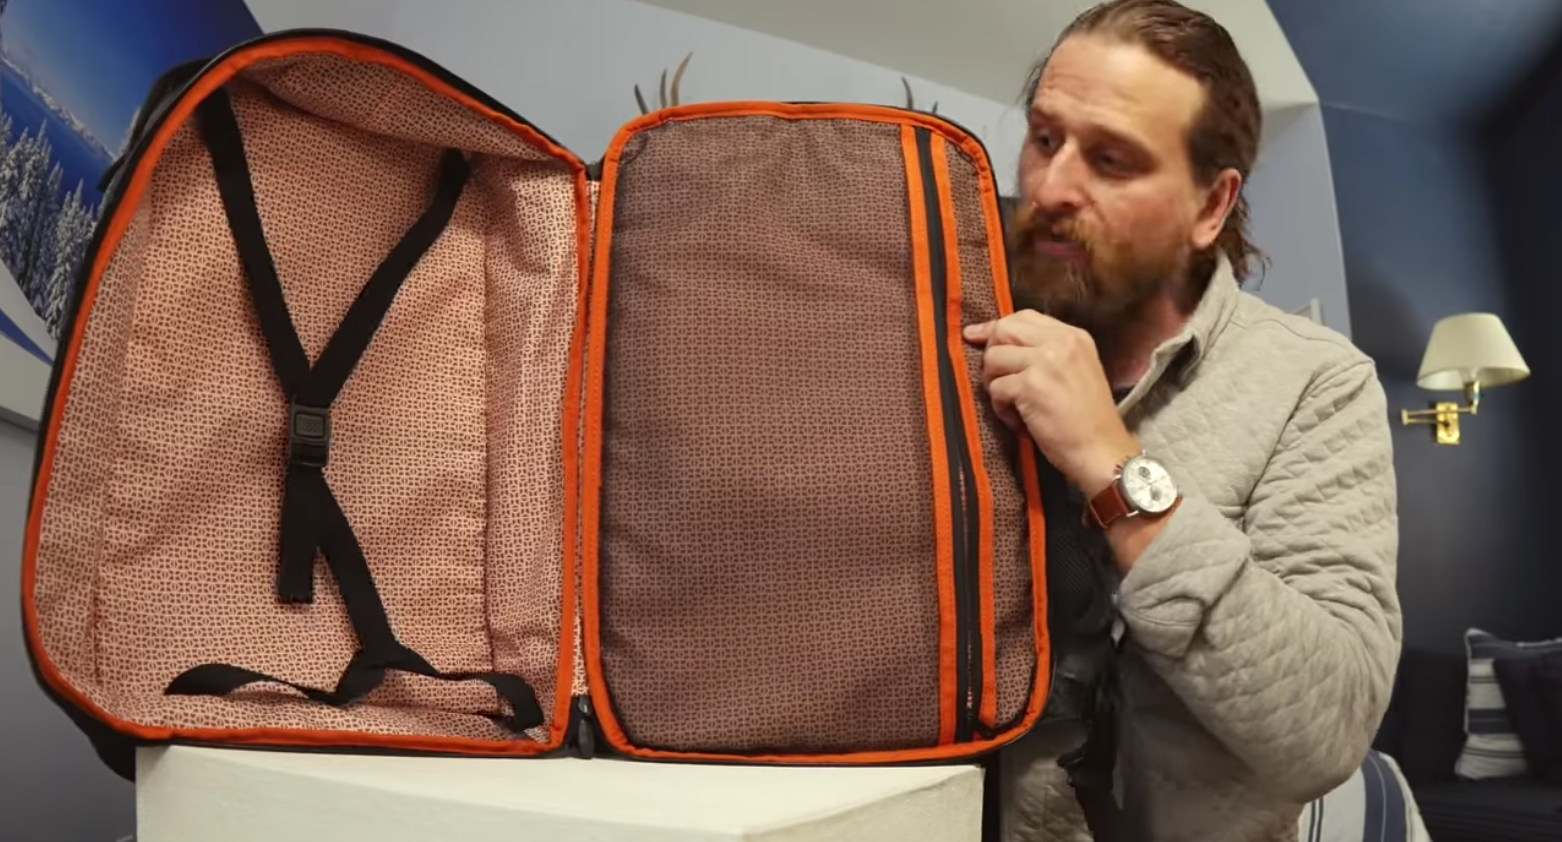 Chase Reeves reviewing the expandable luggage compartment on the Knack Pack backpack